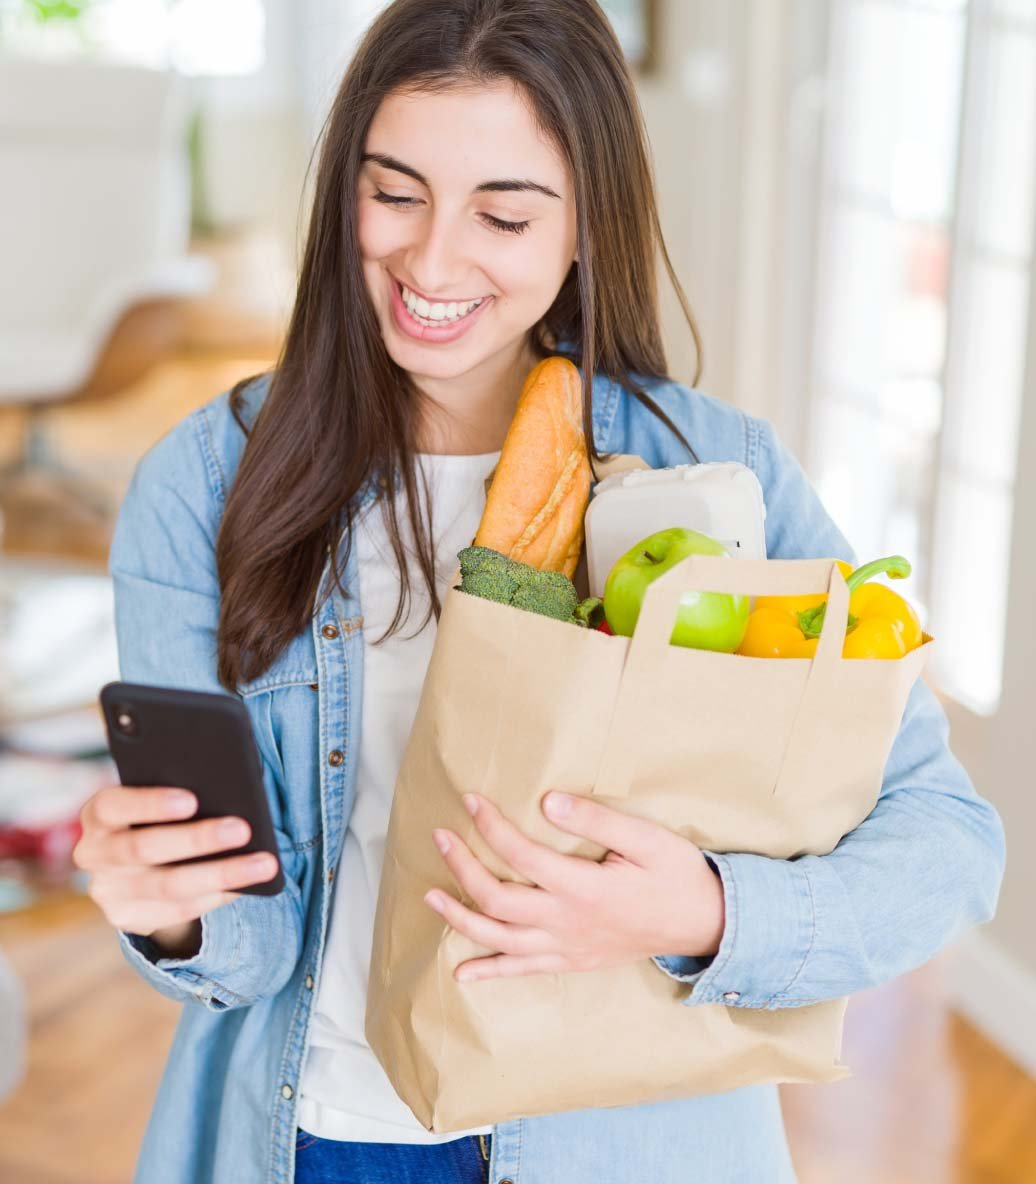 Grocery deliveries software